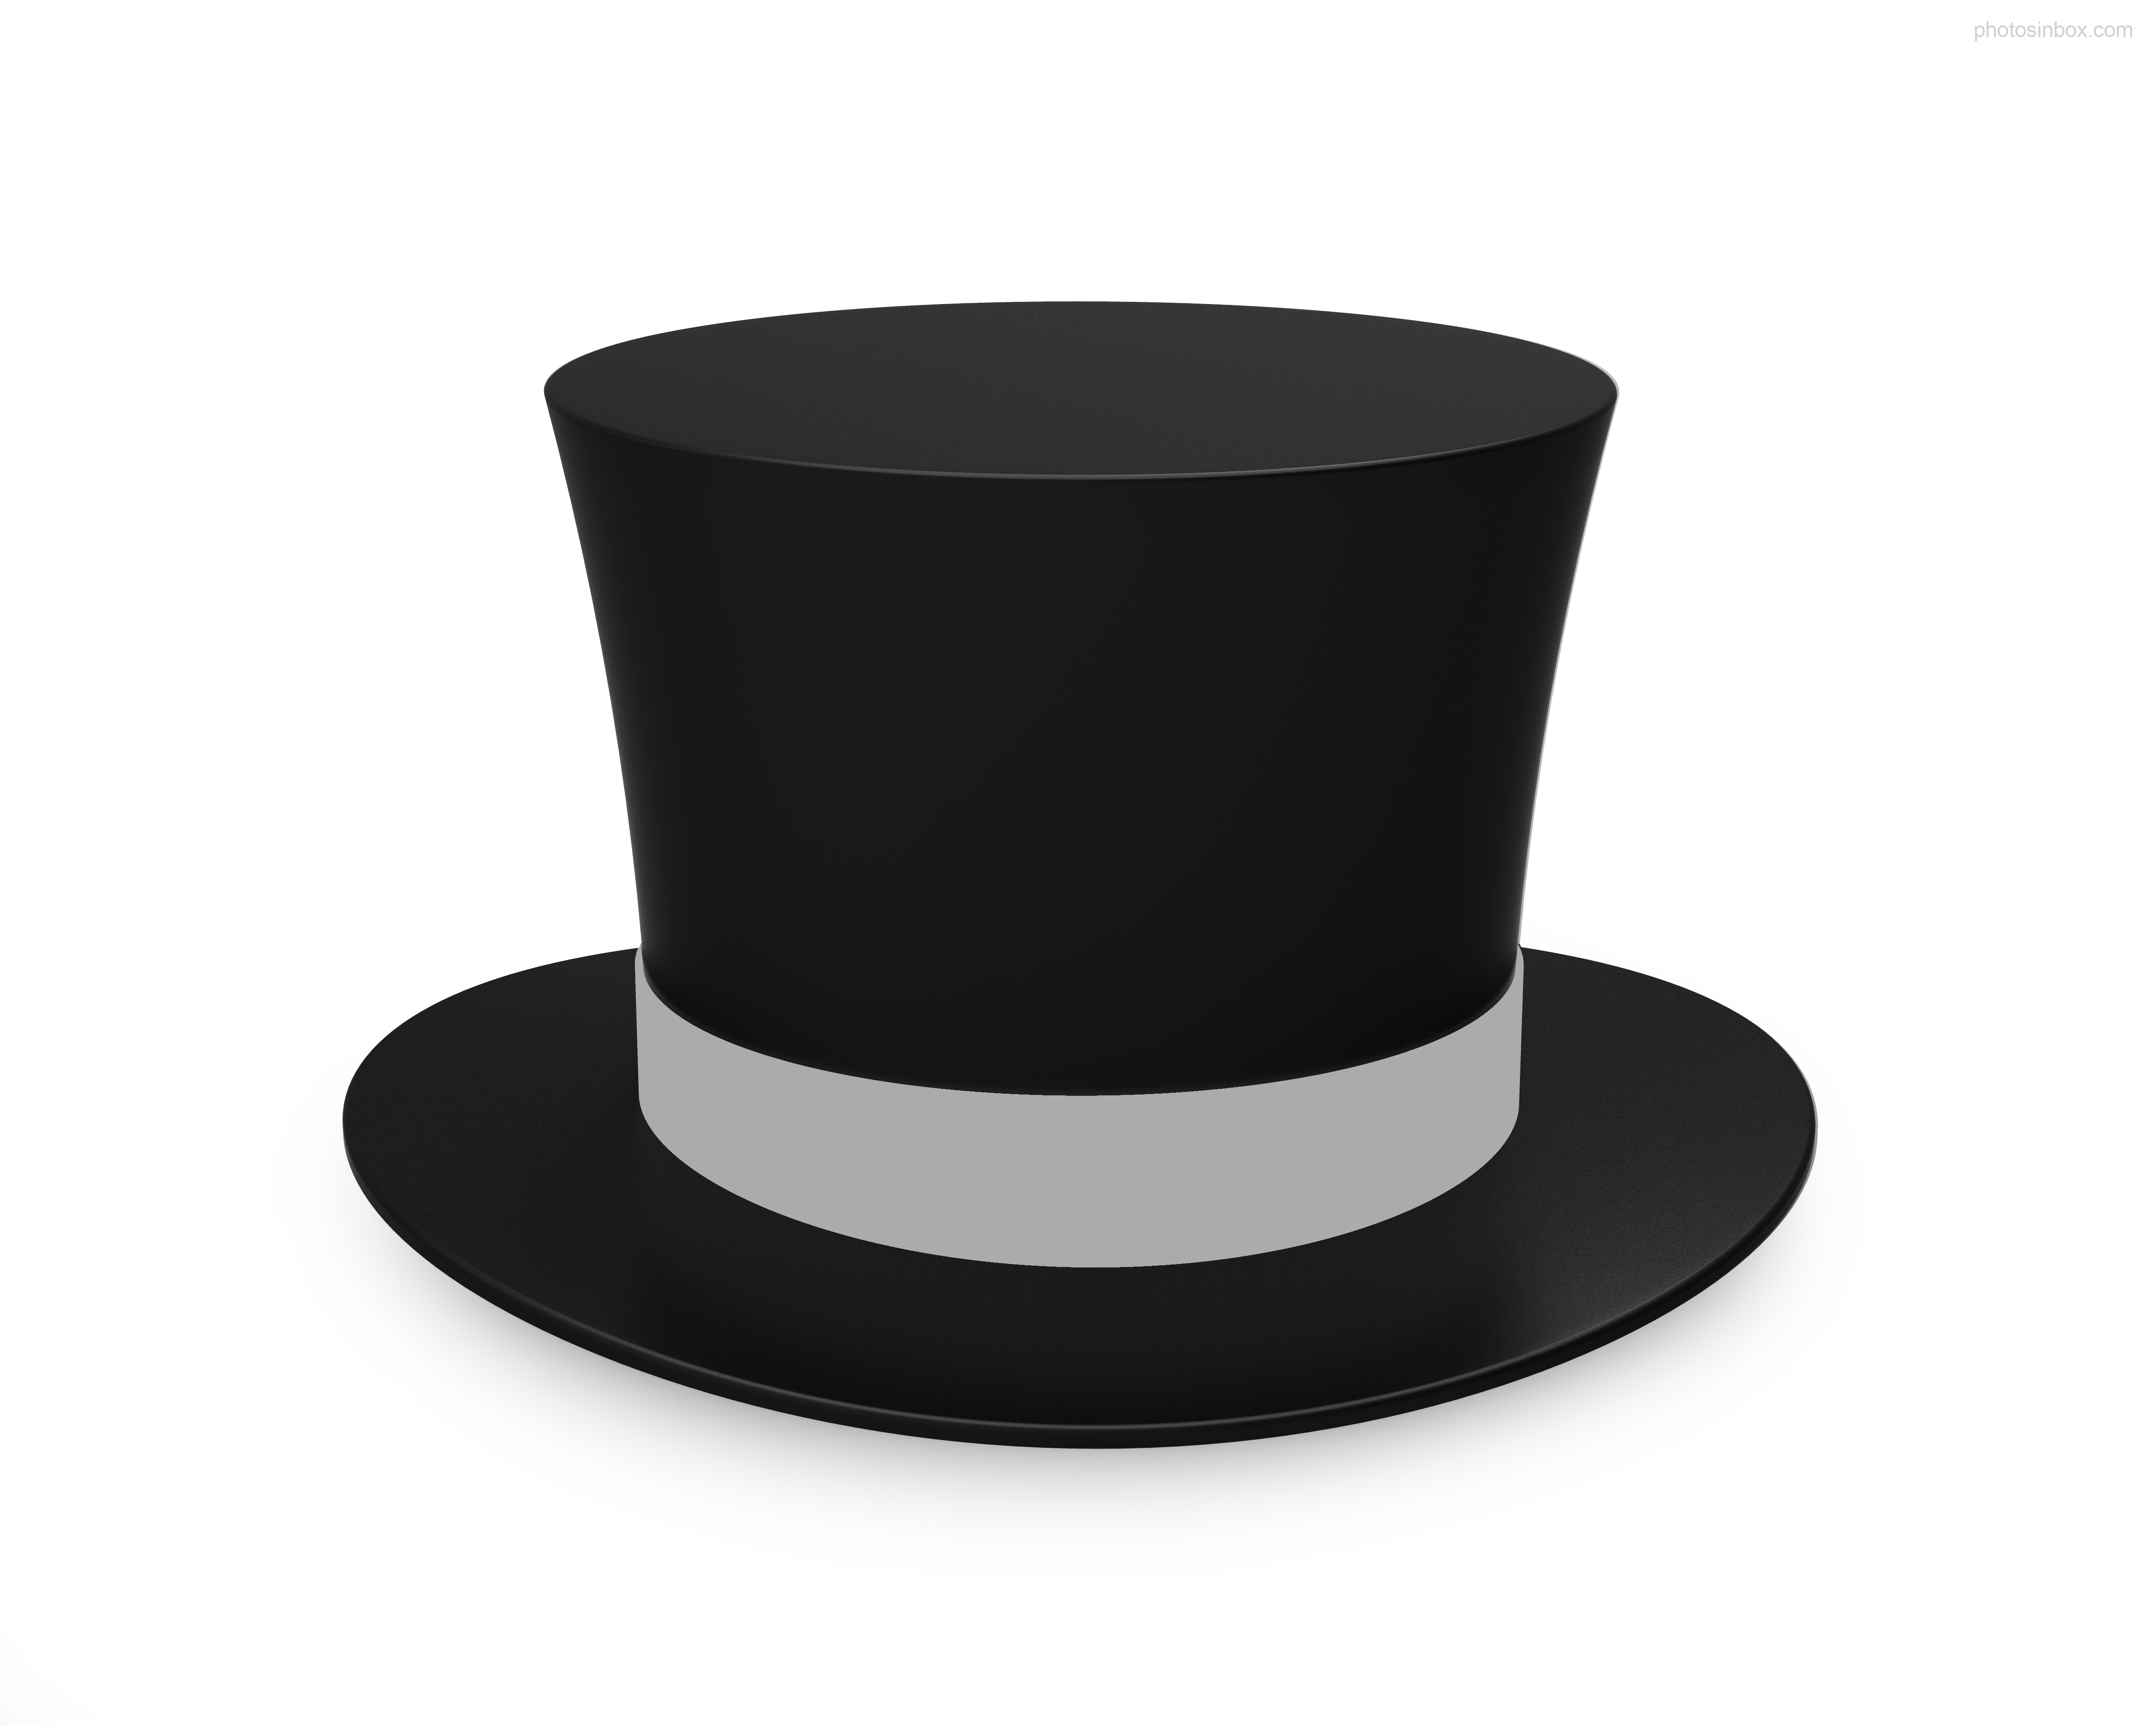 Best Top Hat Outline #14131 - Clipartion.com